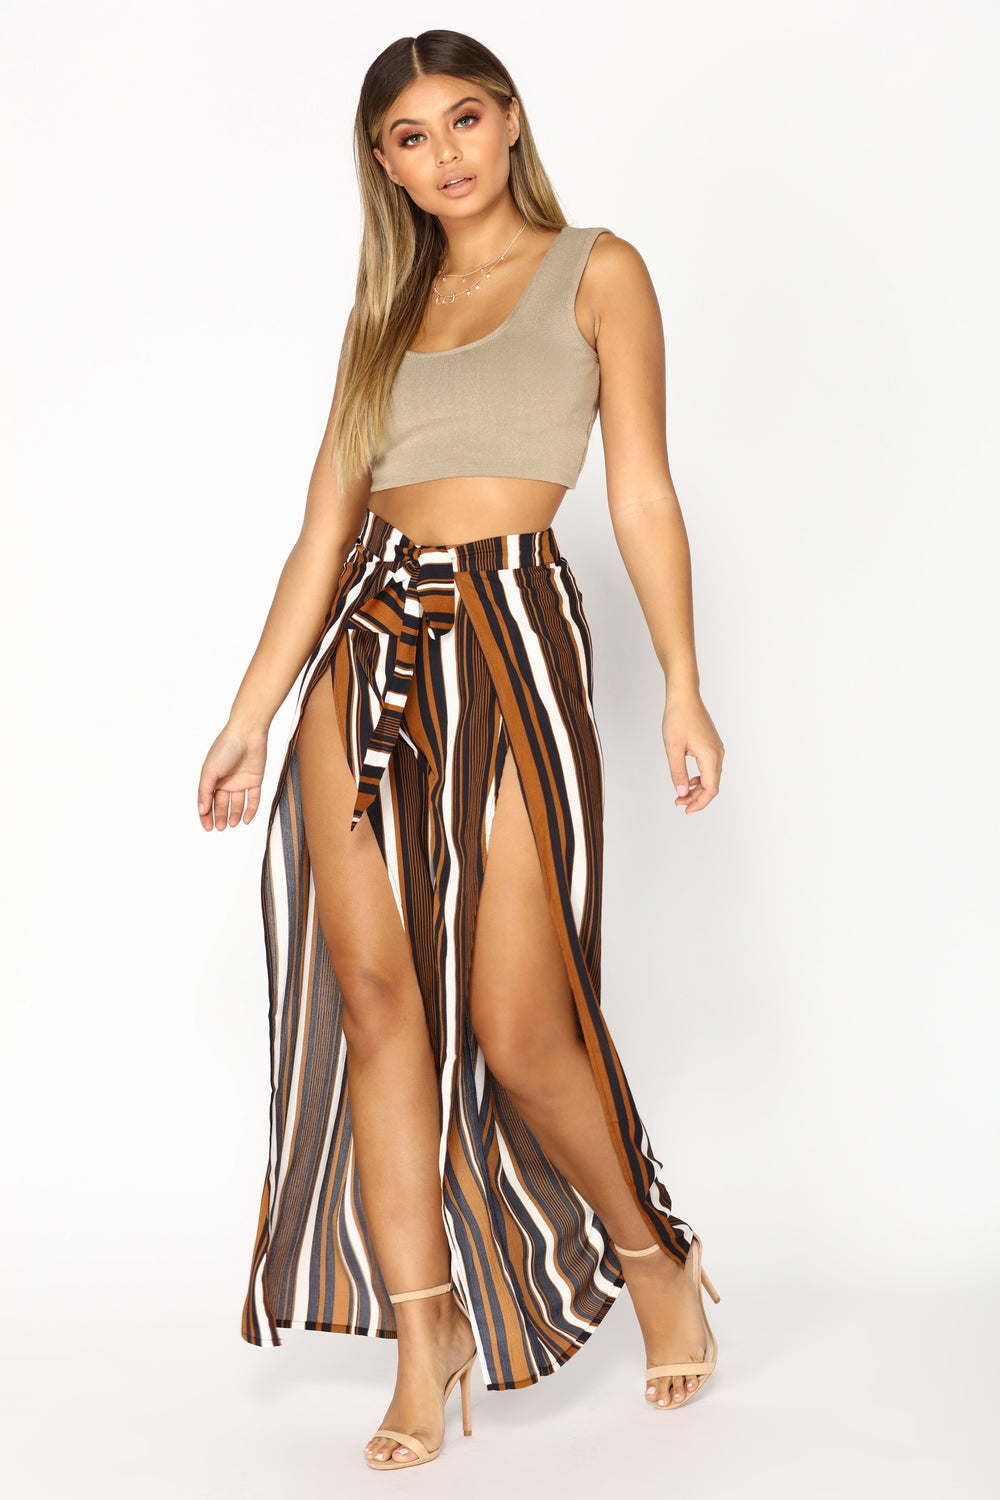 Draw The Line Striped Pants - Bronze